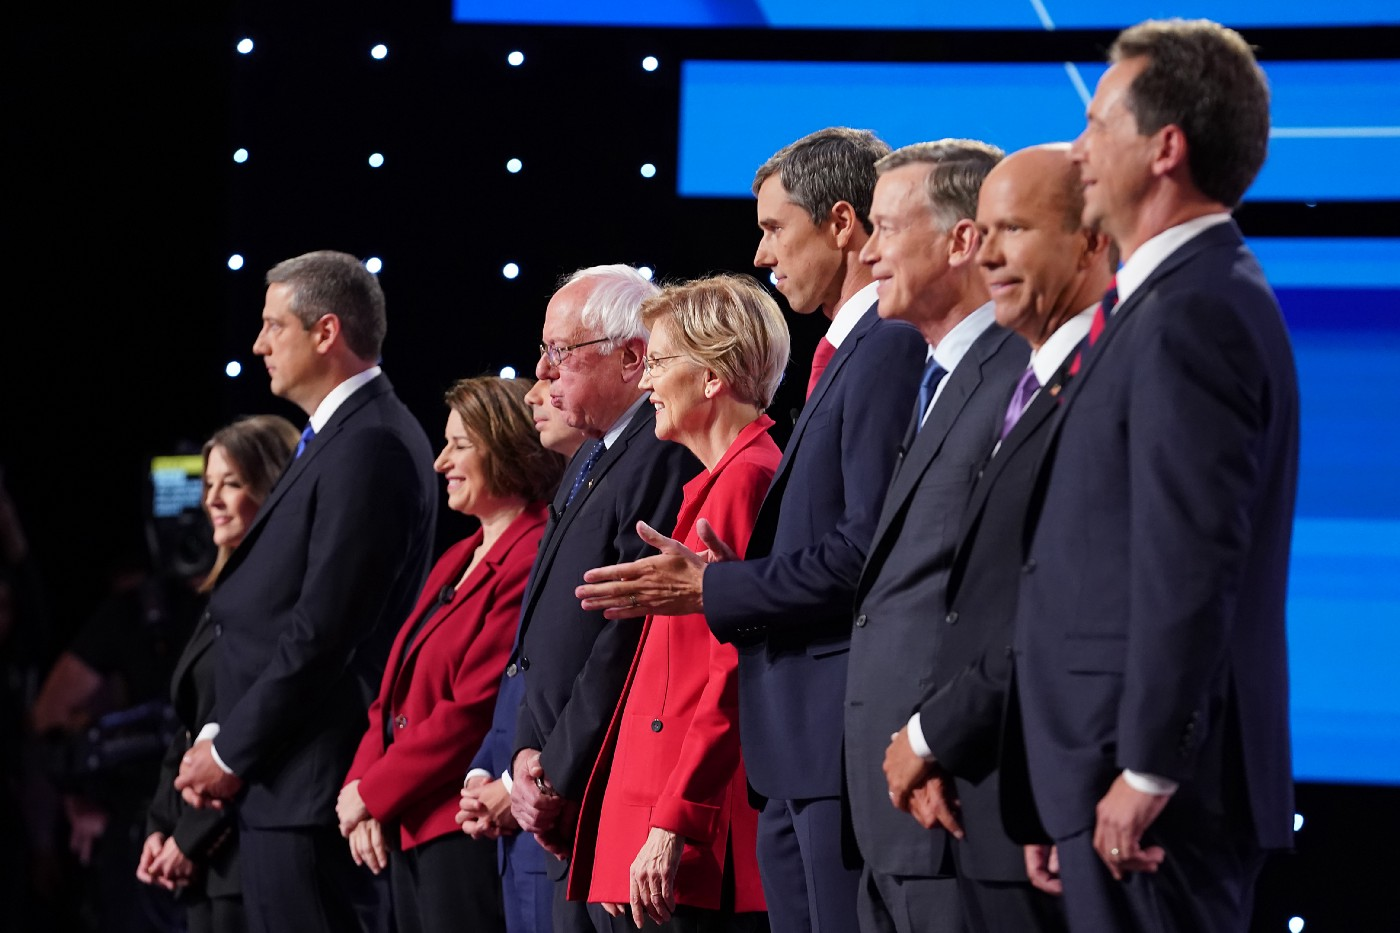 Democratic presidential candidates standing on stage at the beginning of the Democratic Presidential Debate on July 30, 2019.